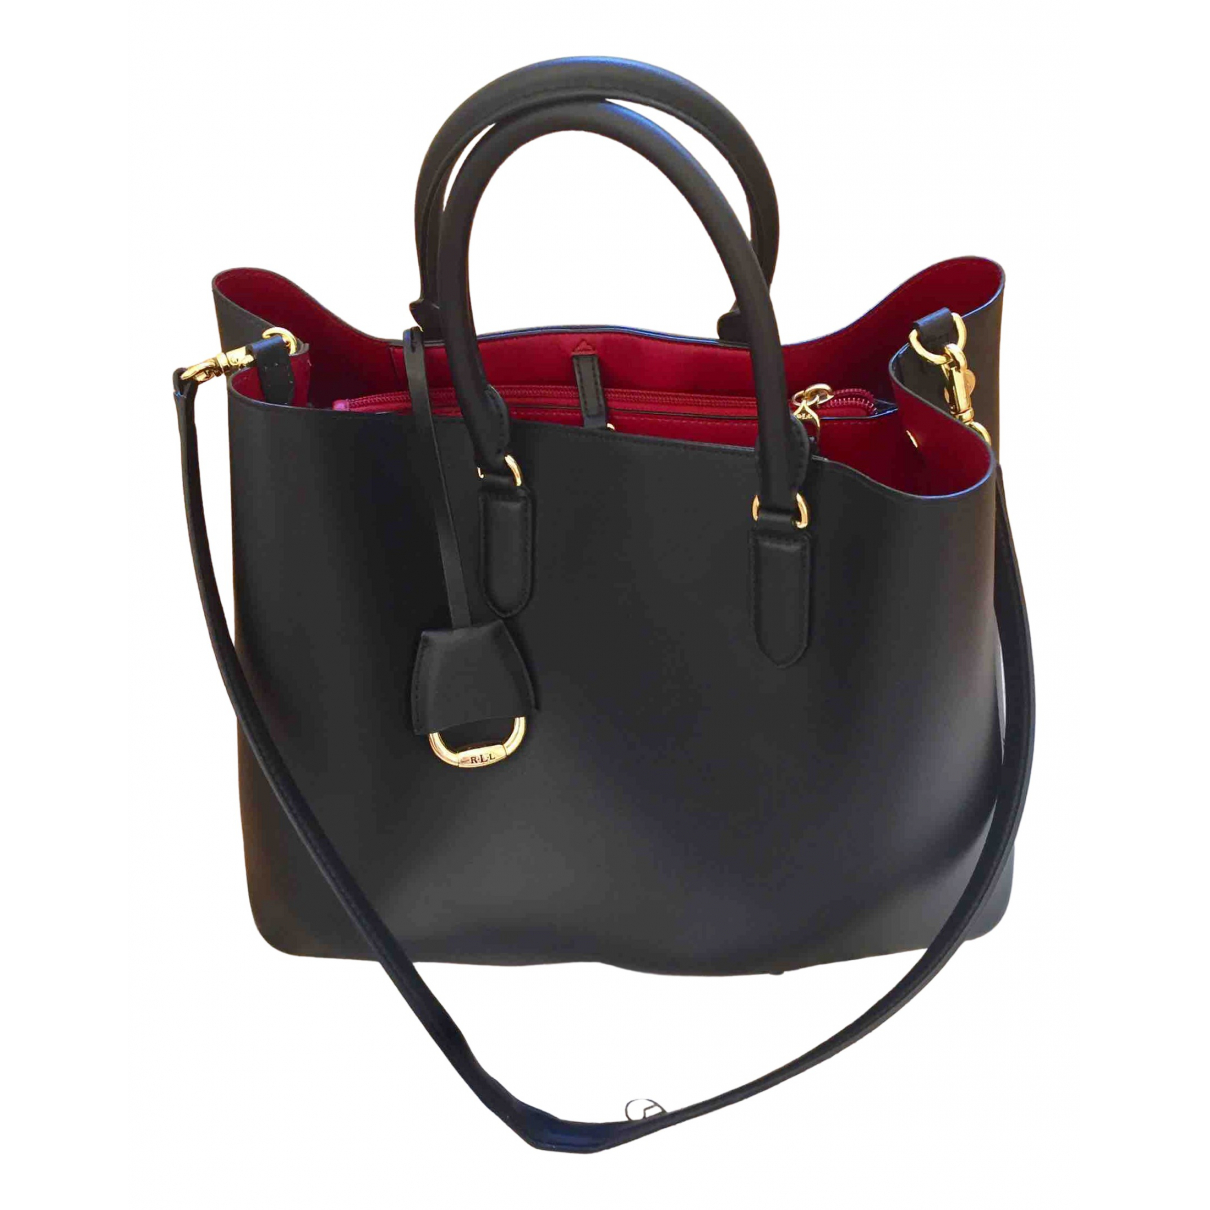 Ralph Lauren \N Black Leather handbag for Women \N